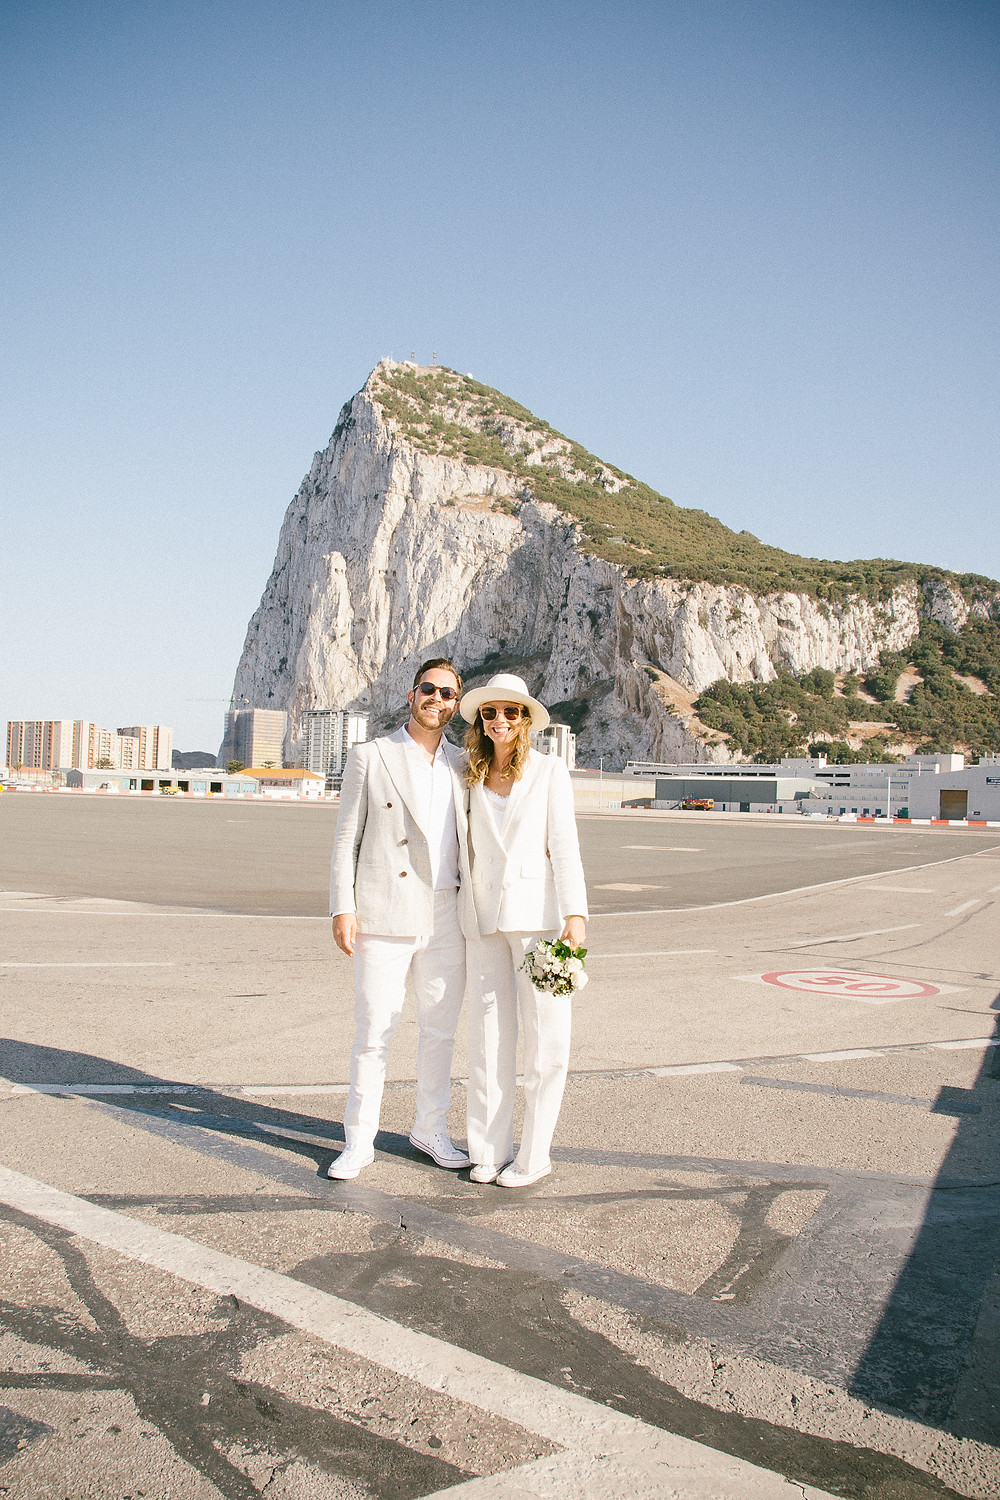 John and Yoko in Gibraltar style wedding outfits